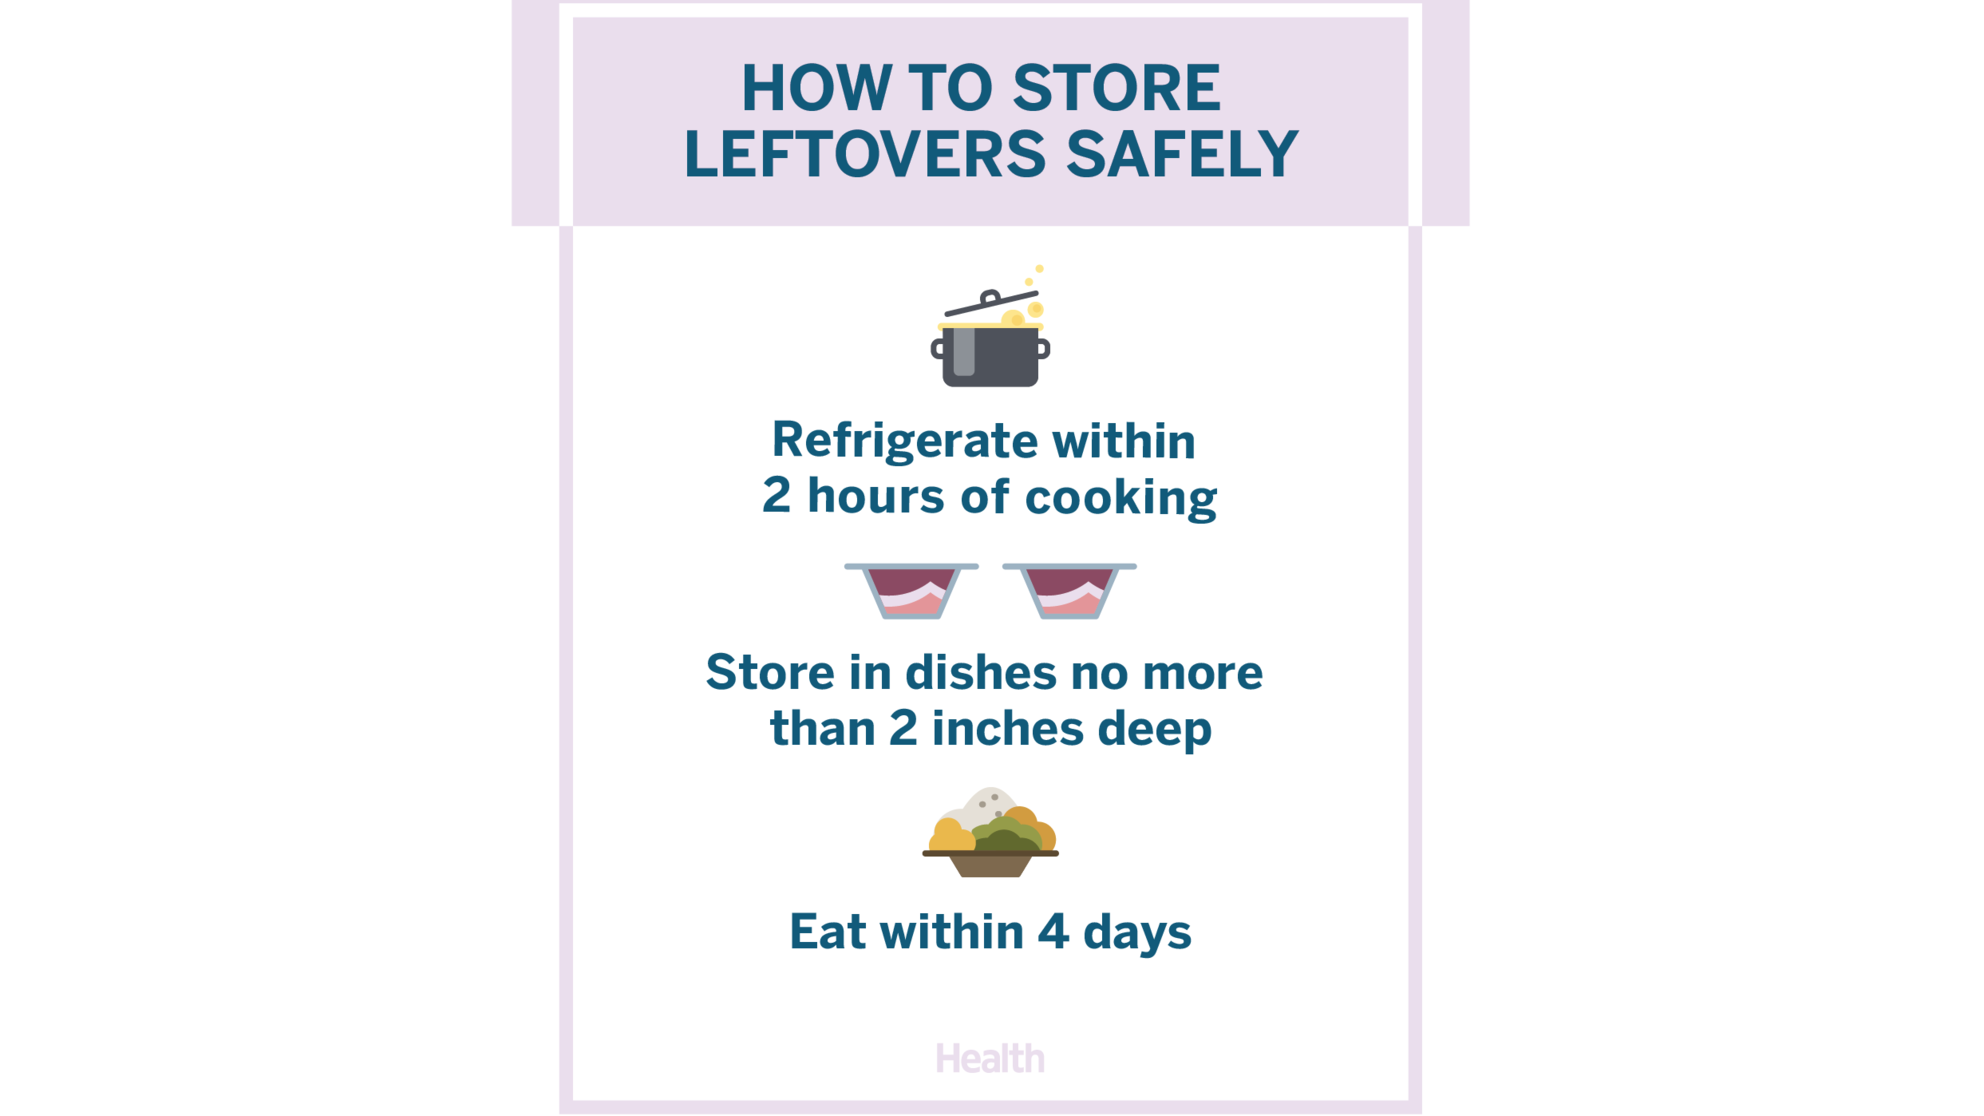 food saftey storage freshness woman health wellbeing fridge